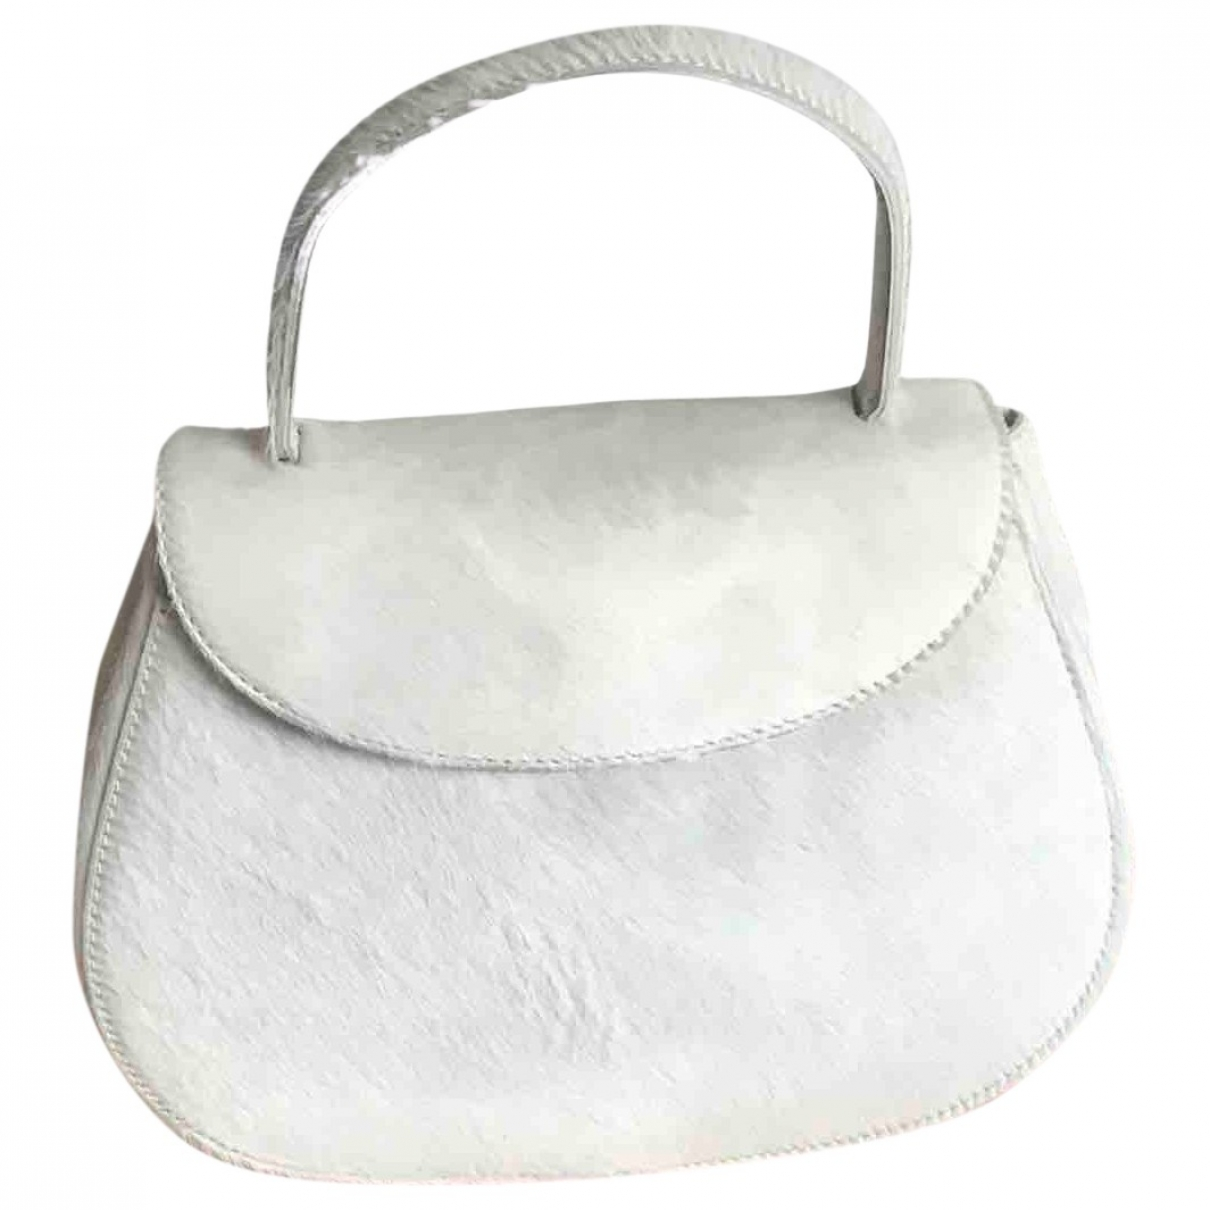 Prada \N White Pony-style calfskin handbag for Women \N